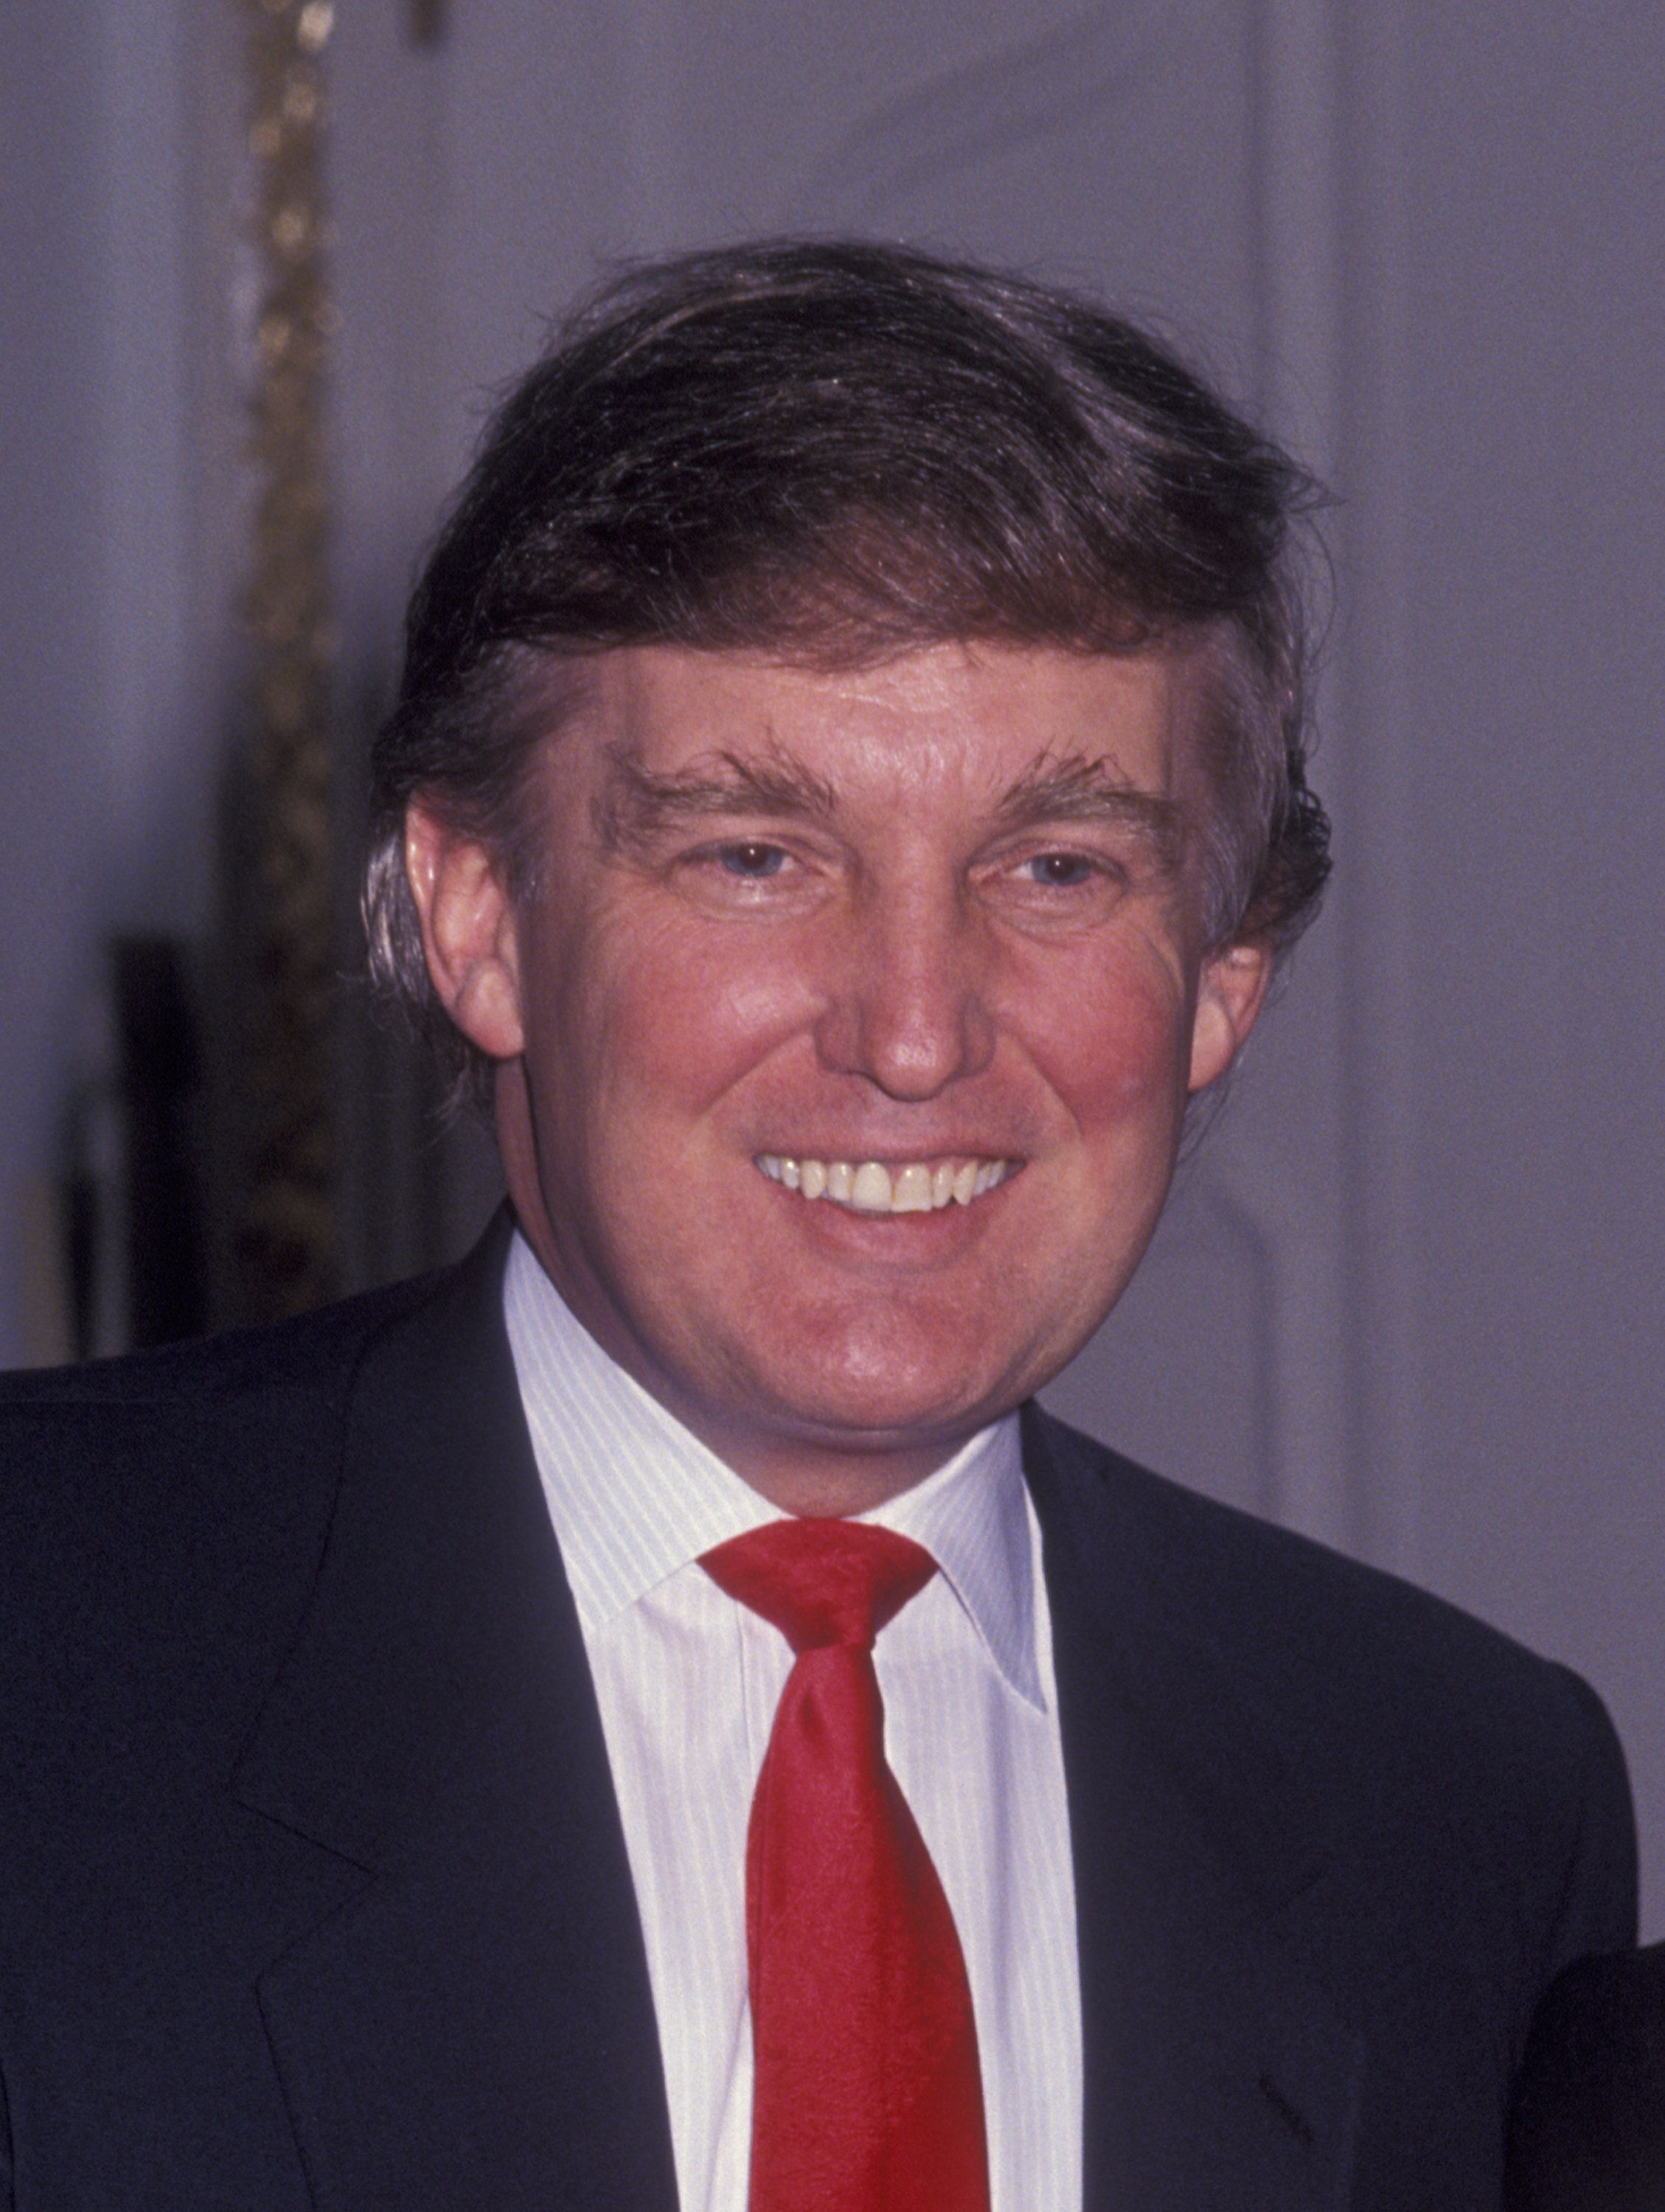 NEW YORK CITY - MAY 1:  Donald Trump attends Elite Models 'Look of the Year' Awards on May 1, 1991 at the Plaza Hotel in New York City. (Photo by Ron Galella/WireImage)